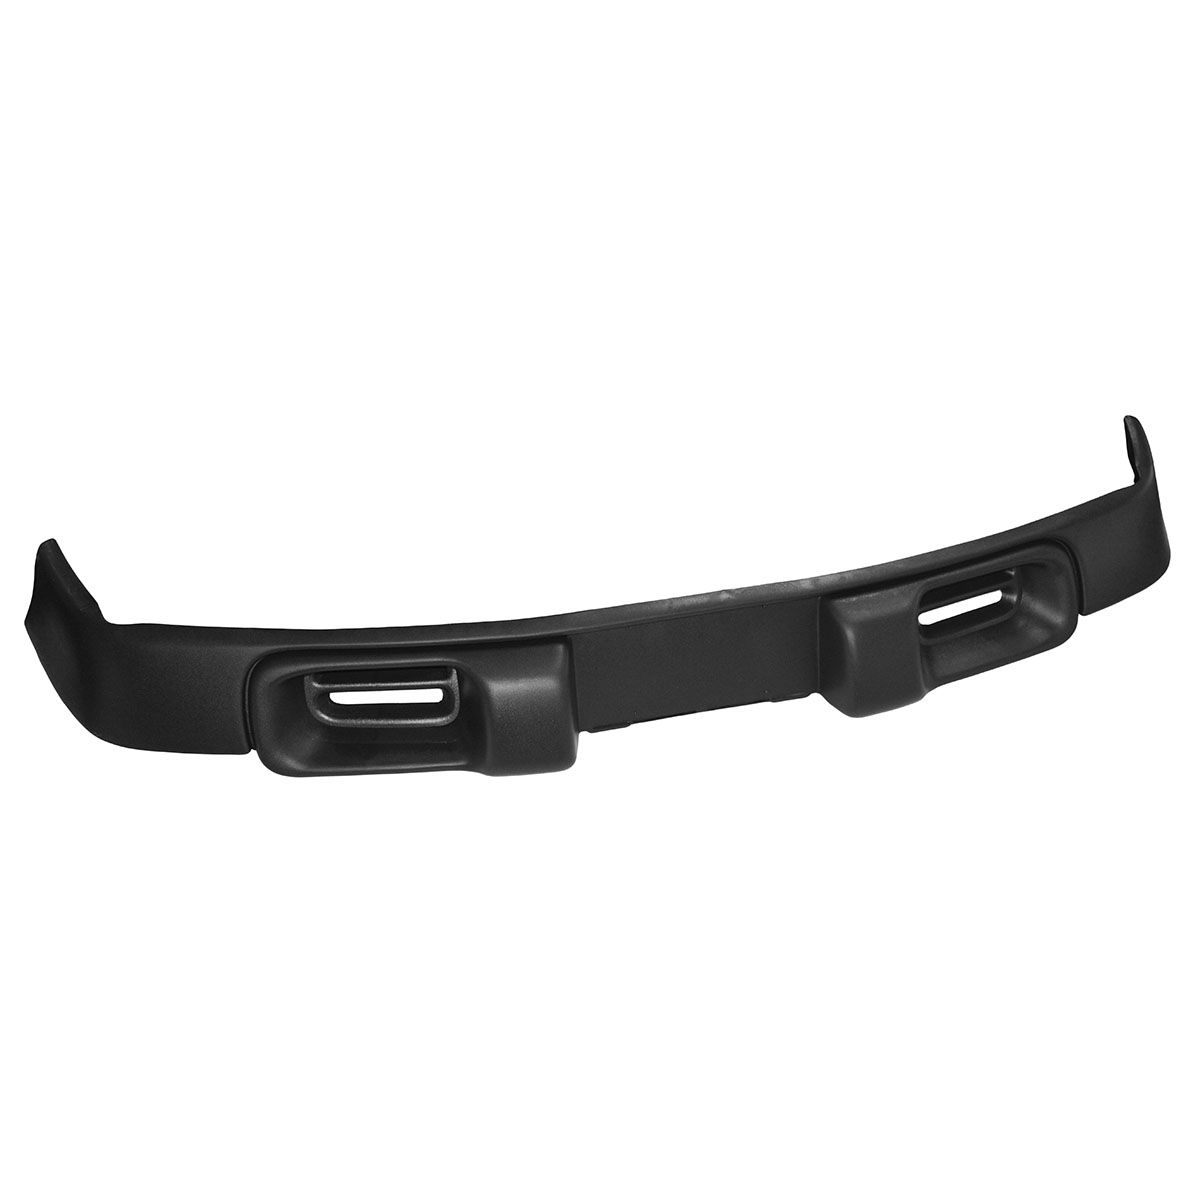 Front New Air Dam Deflector Valance fits Chevy S-10 Pickup S10